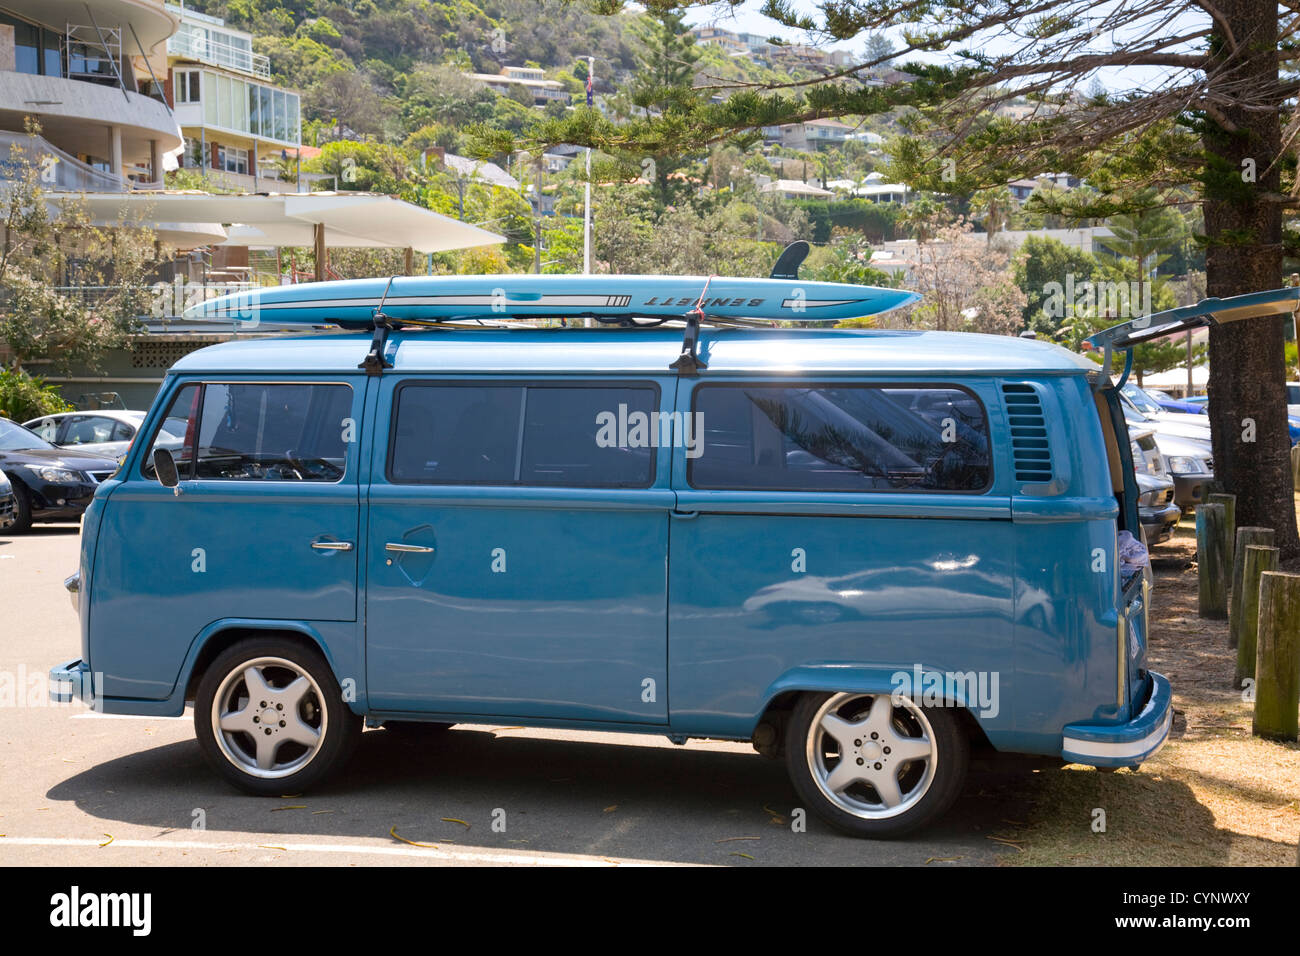 Camper Side View >> volkswagen combi kombi campervan, famous;y used by surfers and those Stock Photo: 51497795 - Alamy